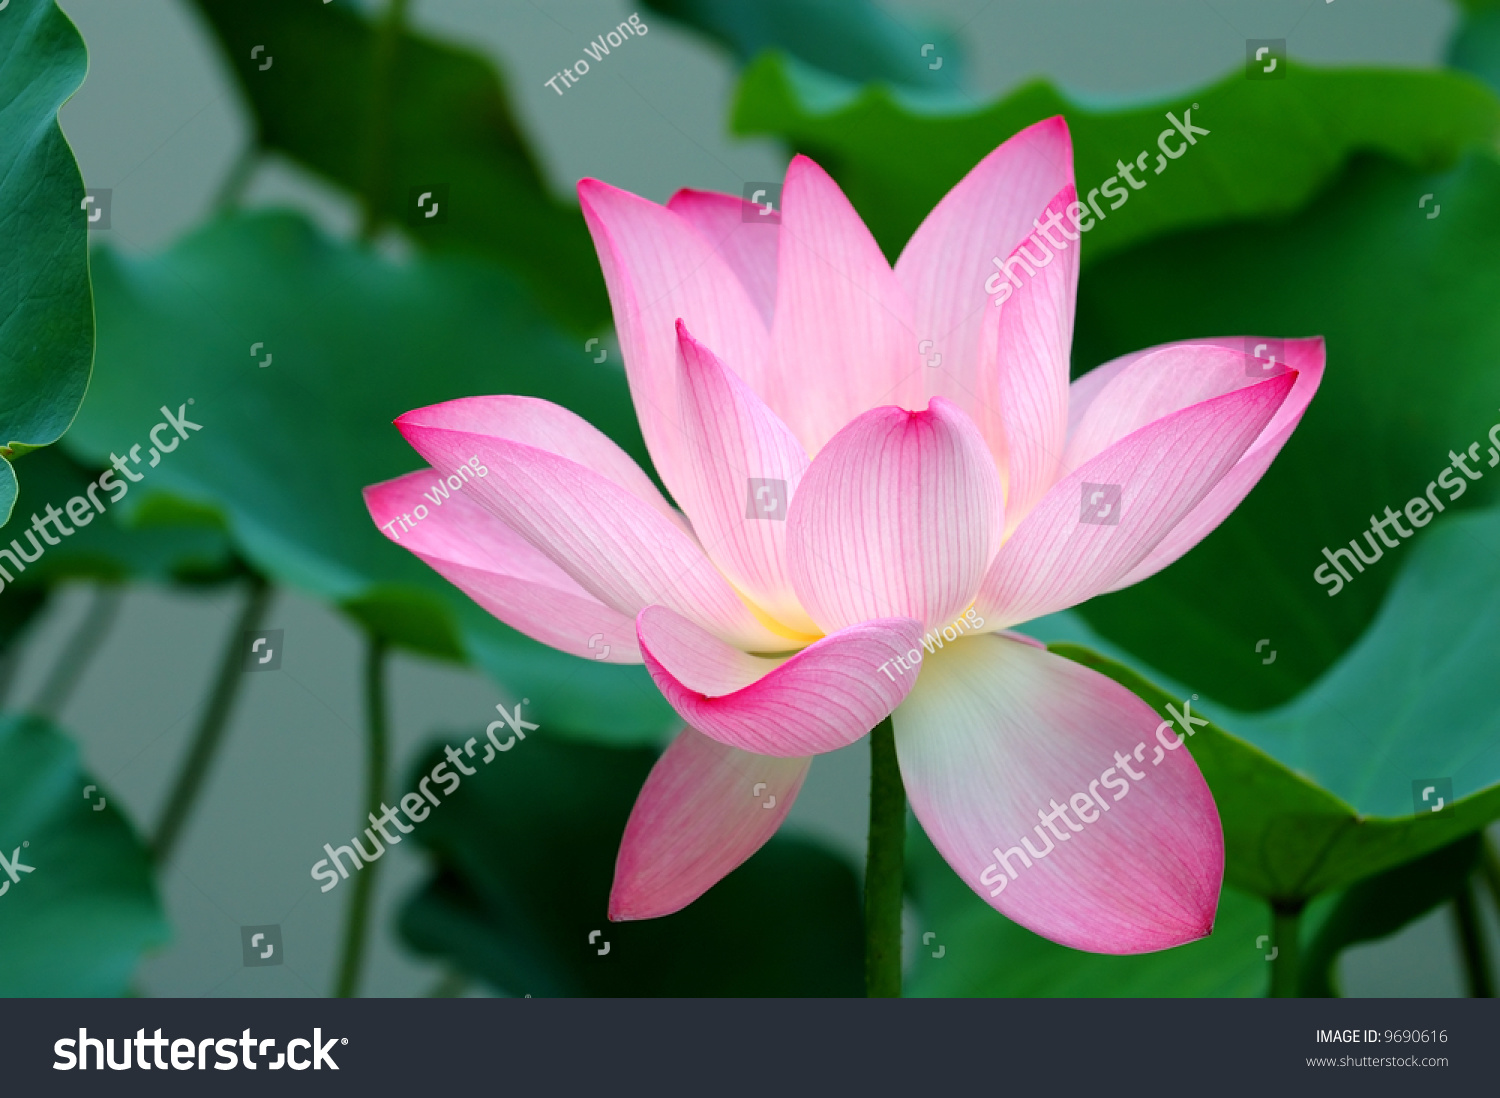 Blooming of a lotus flower on pond ez canvas id 9690616 izmirmasajfo